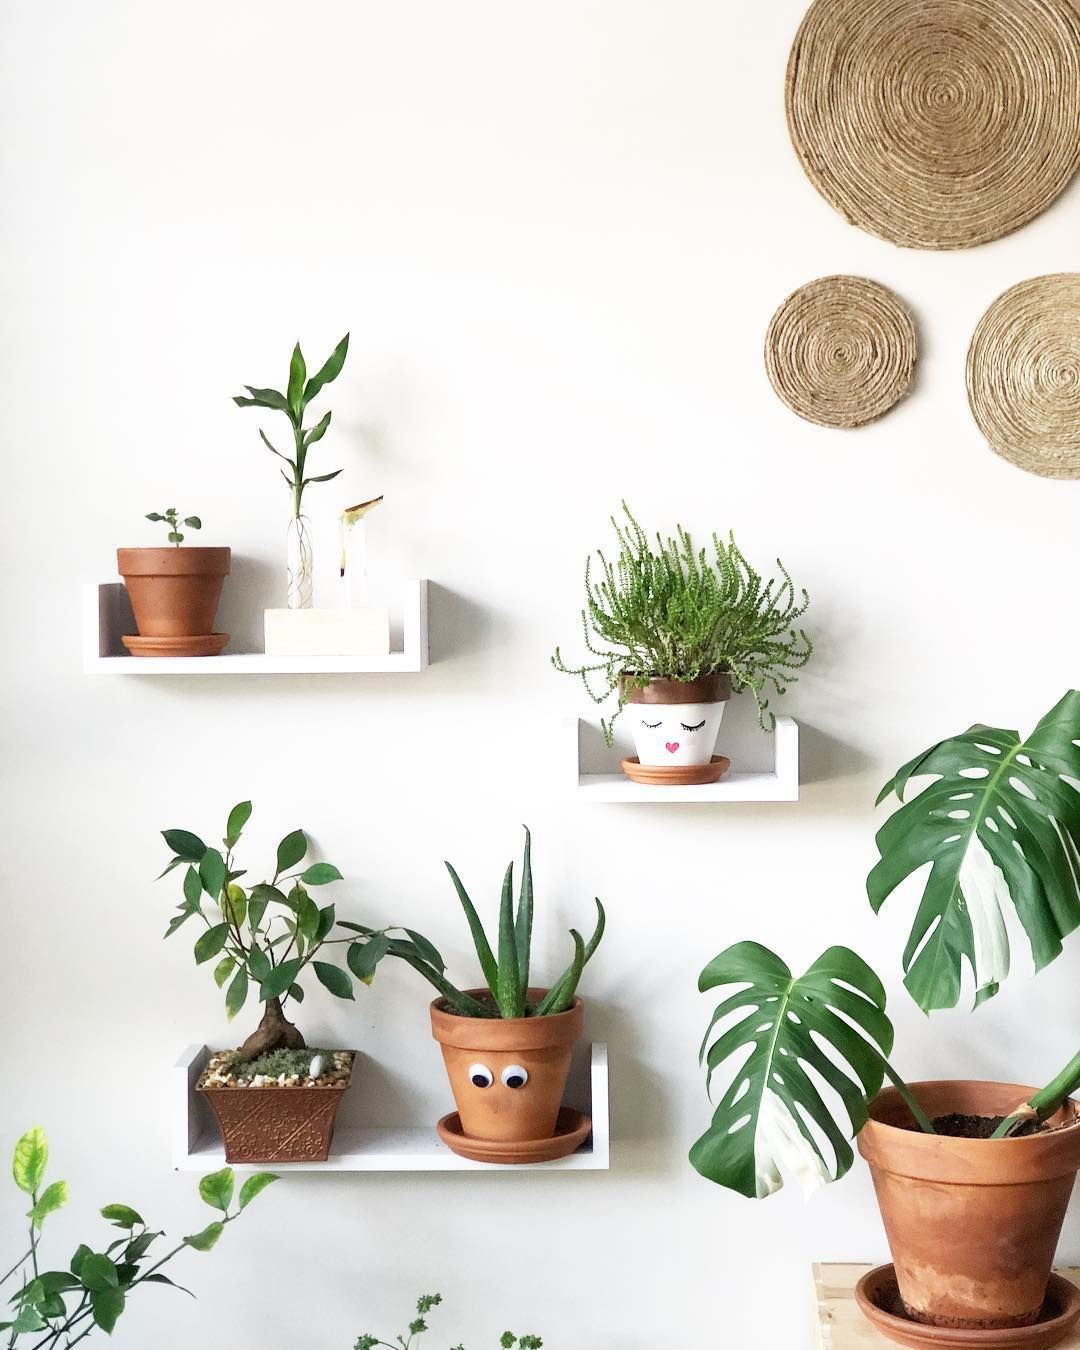 Plant family #houseplants | INDOOR PLANTS | Indoor plants ... on wrightsville house, american girl house, easy clean house, beach house, home small modern house, fluff house, palladium house, gearhead house, topper house, anthem house, the rat house, average house, perfect house, actual house, dibs house, uncomfortable house, reliance house, mattel house, idea house, immense house,